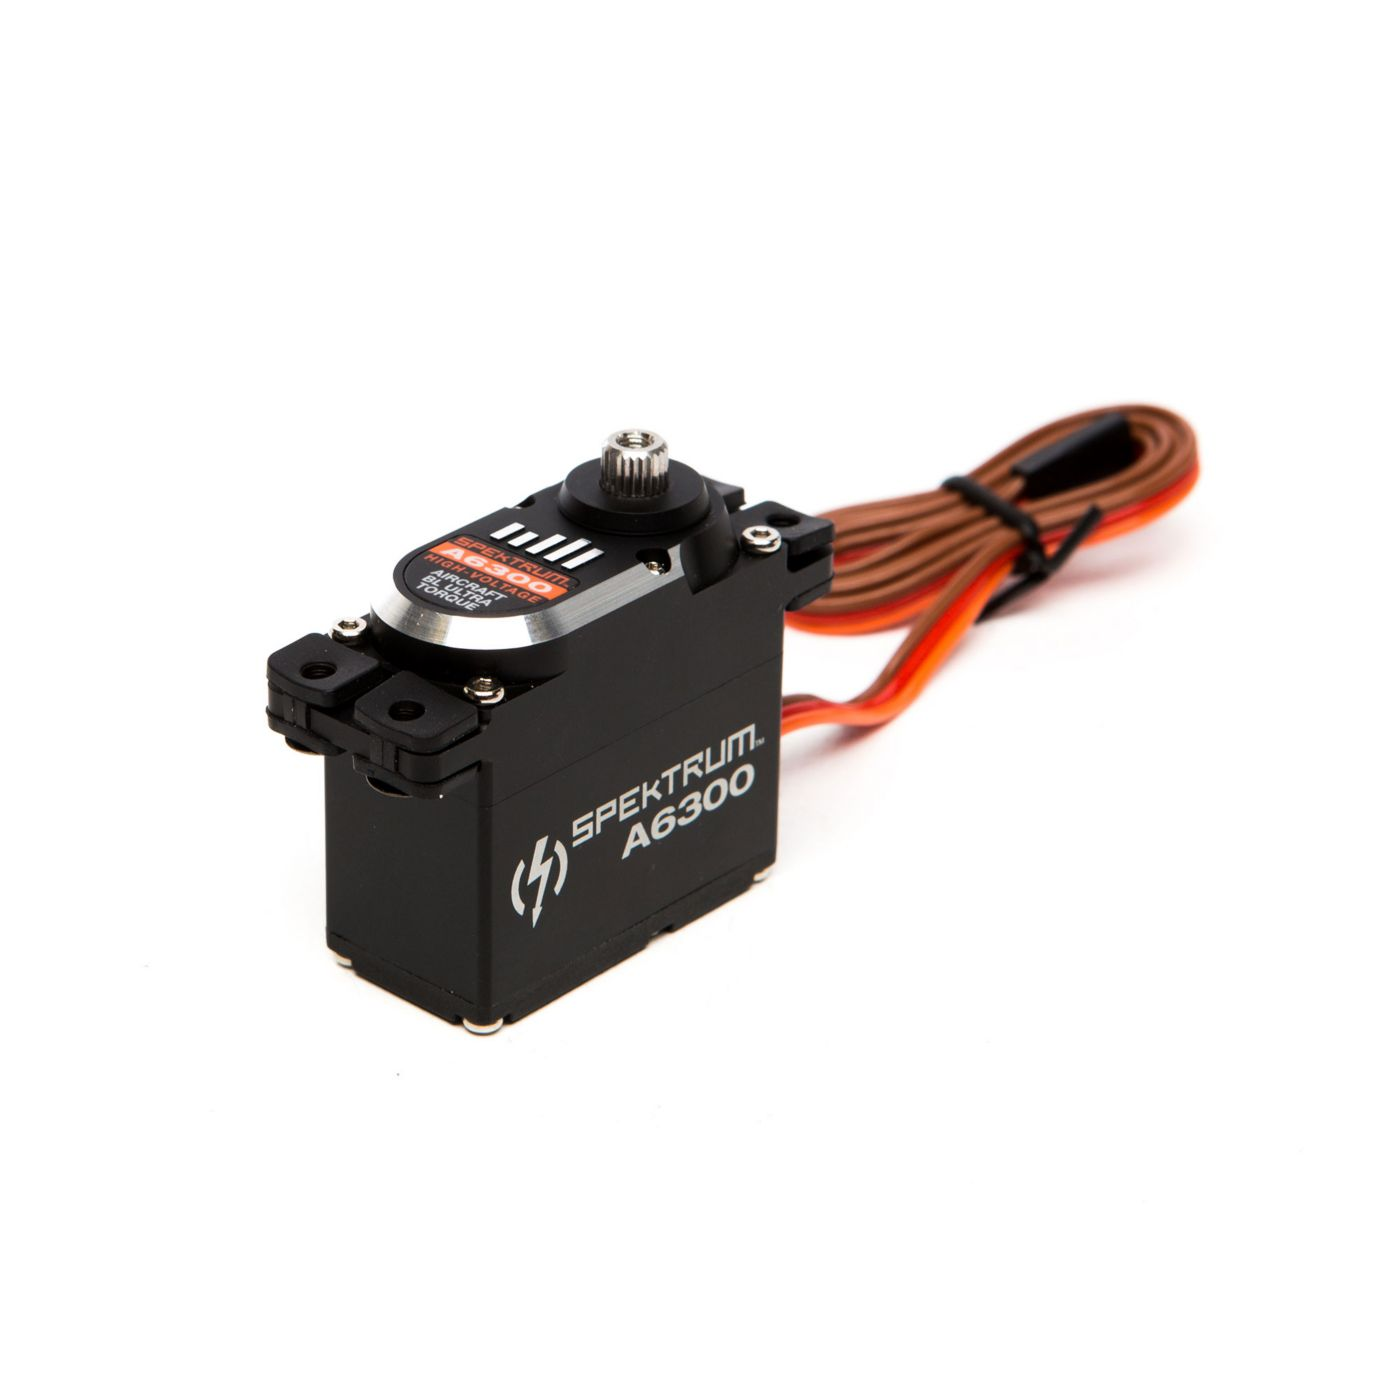 small resolution of image for a6300 hv ultra torque brushless aircraft servo mg from horizonhobby